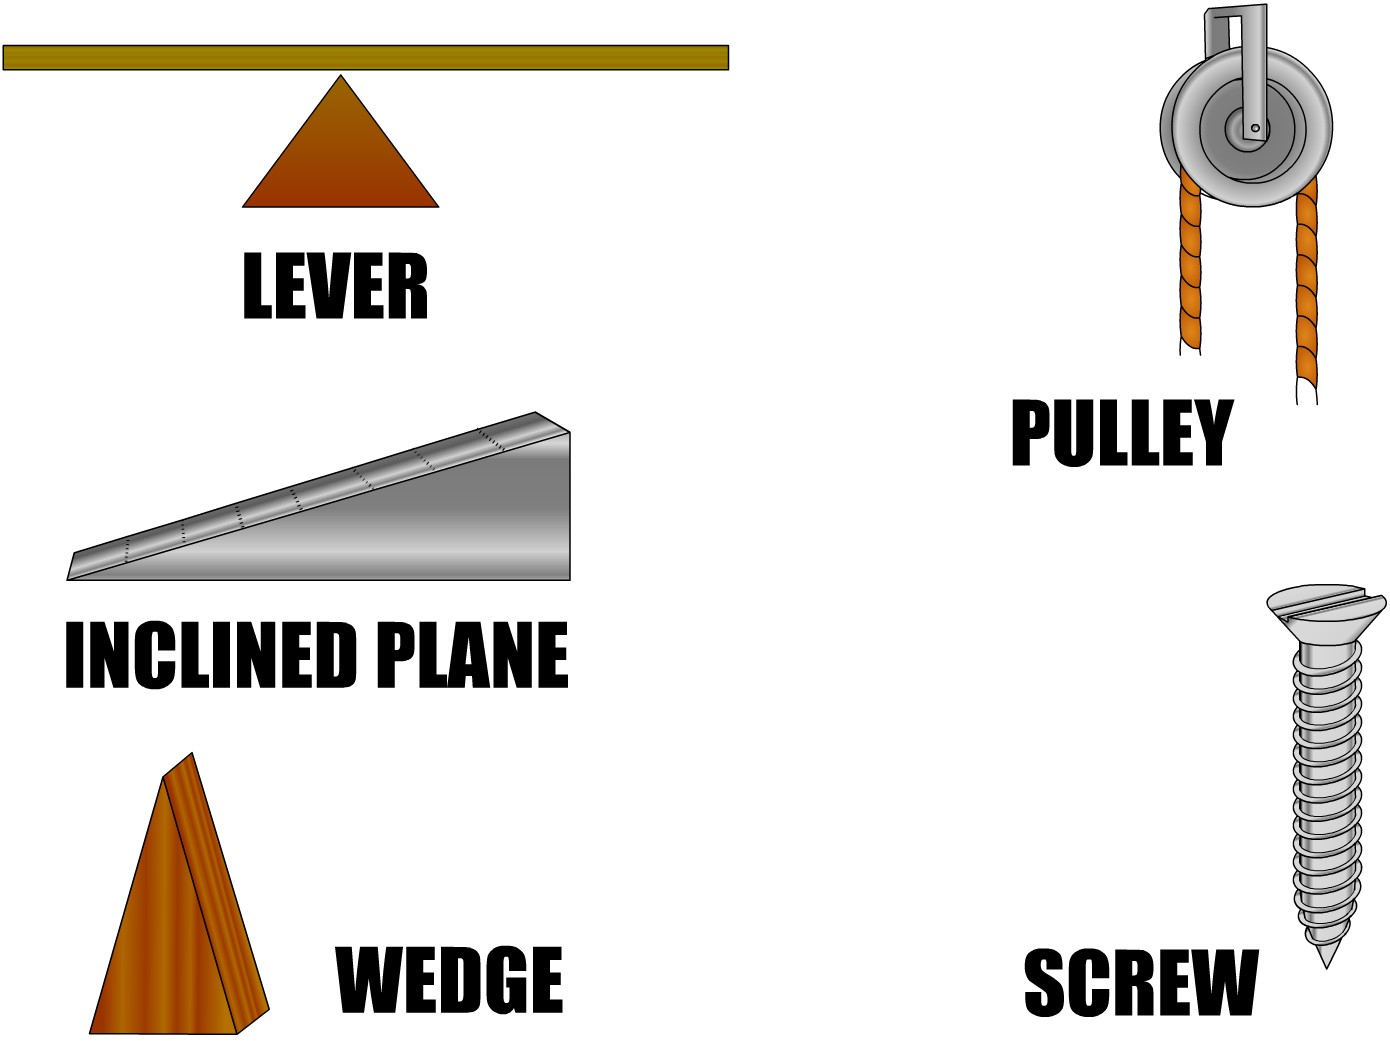 Simple Machines Wedge Simple machine booklet: you